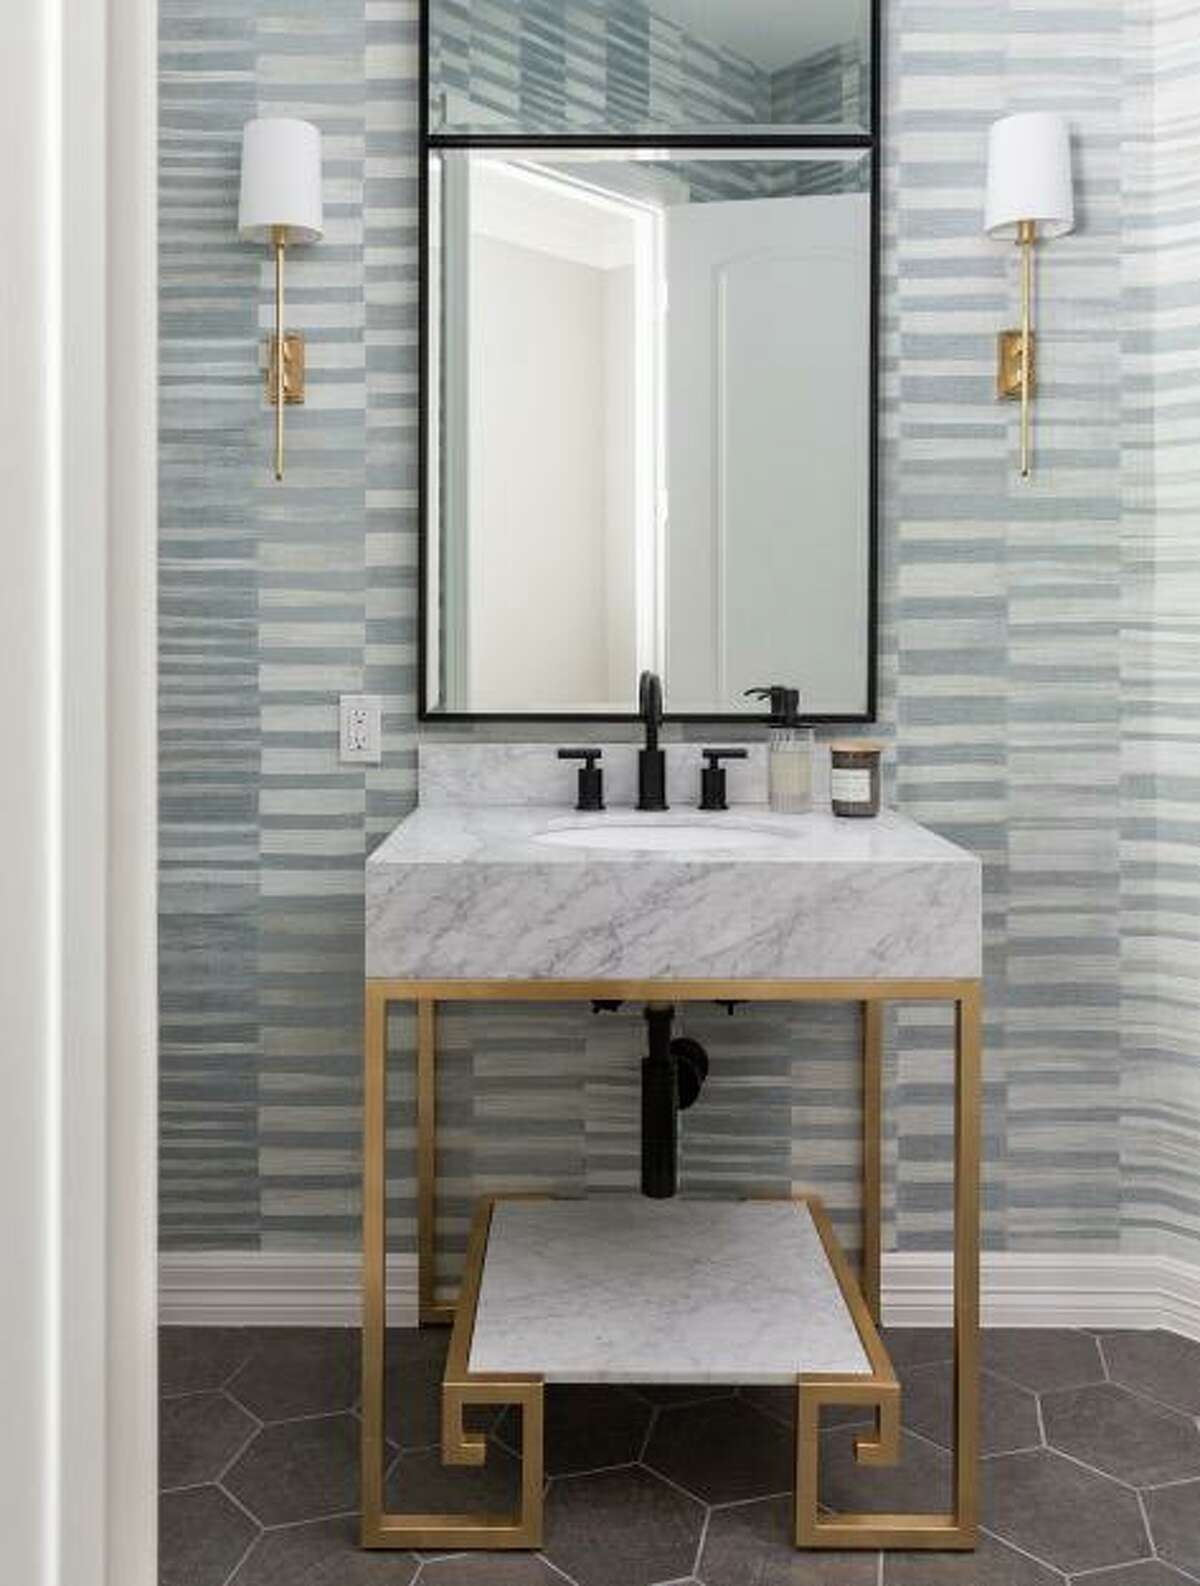 Wallpaper and great lighting are beautiful finishing touches in a powder bathroom.